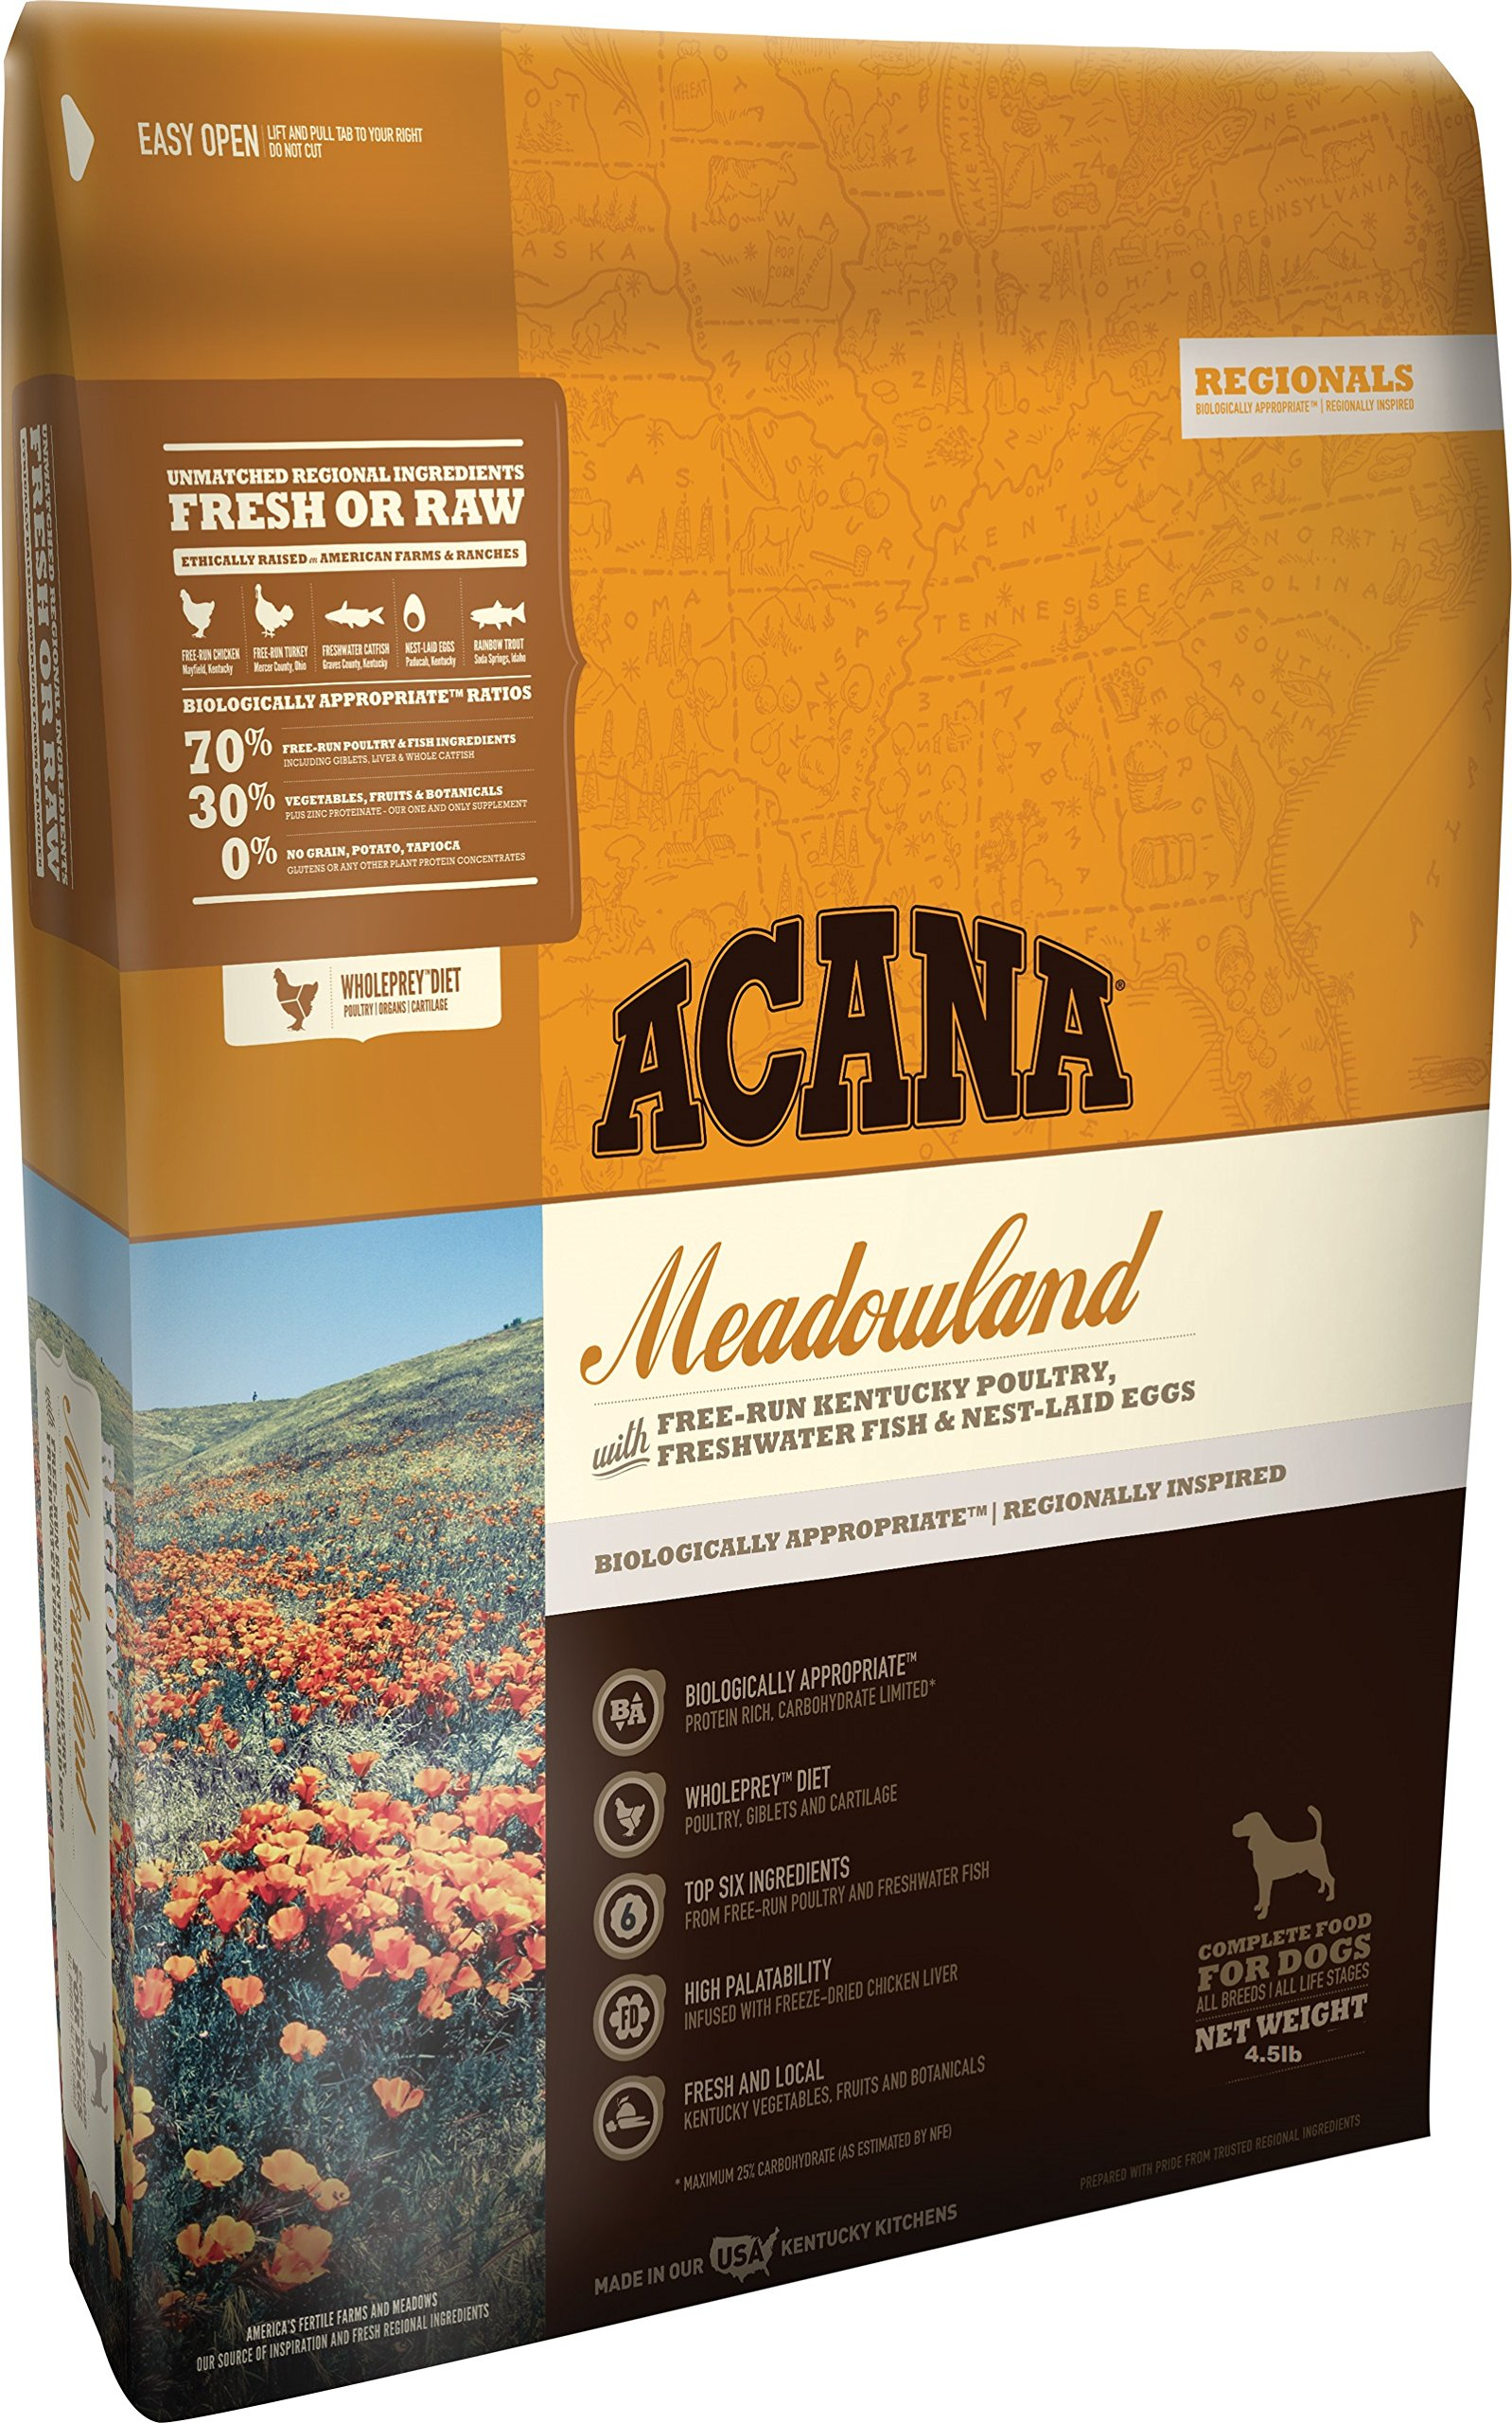 Acana Regionals Meadowland for Dogs, 4.5 pounds